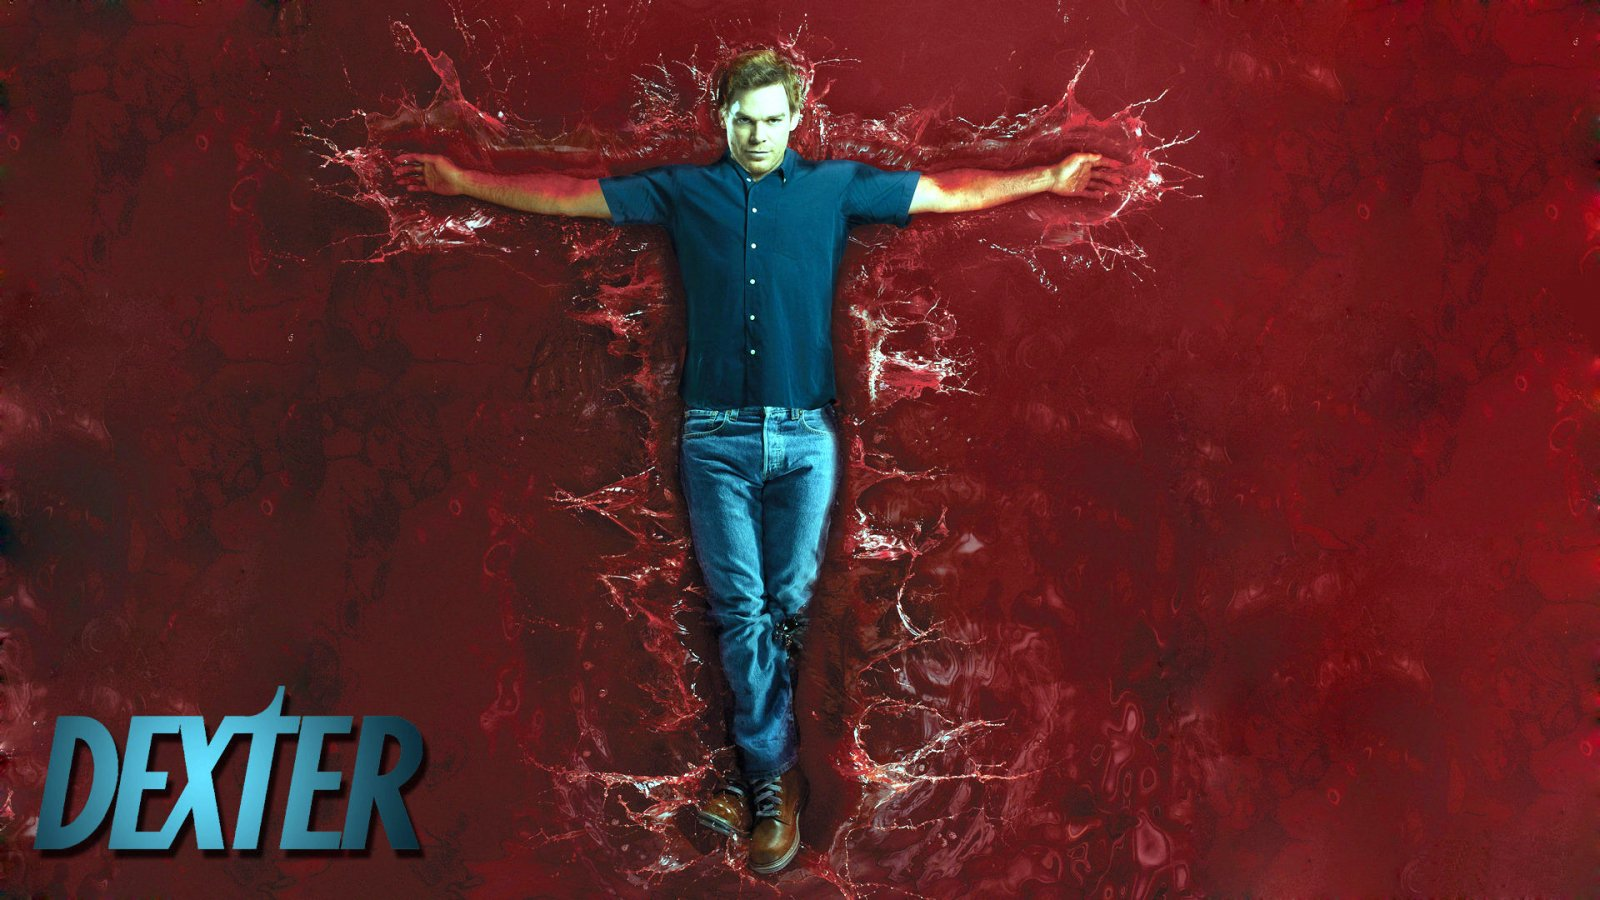 Hd Wallpapers Images: Dexter Wallpaper 1080p